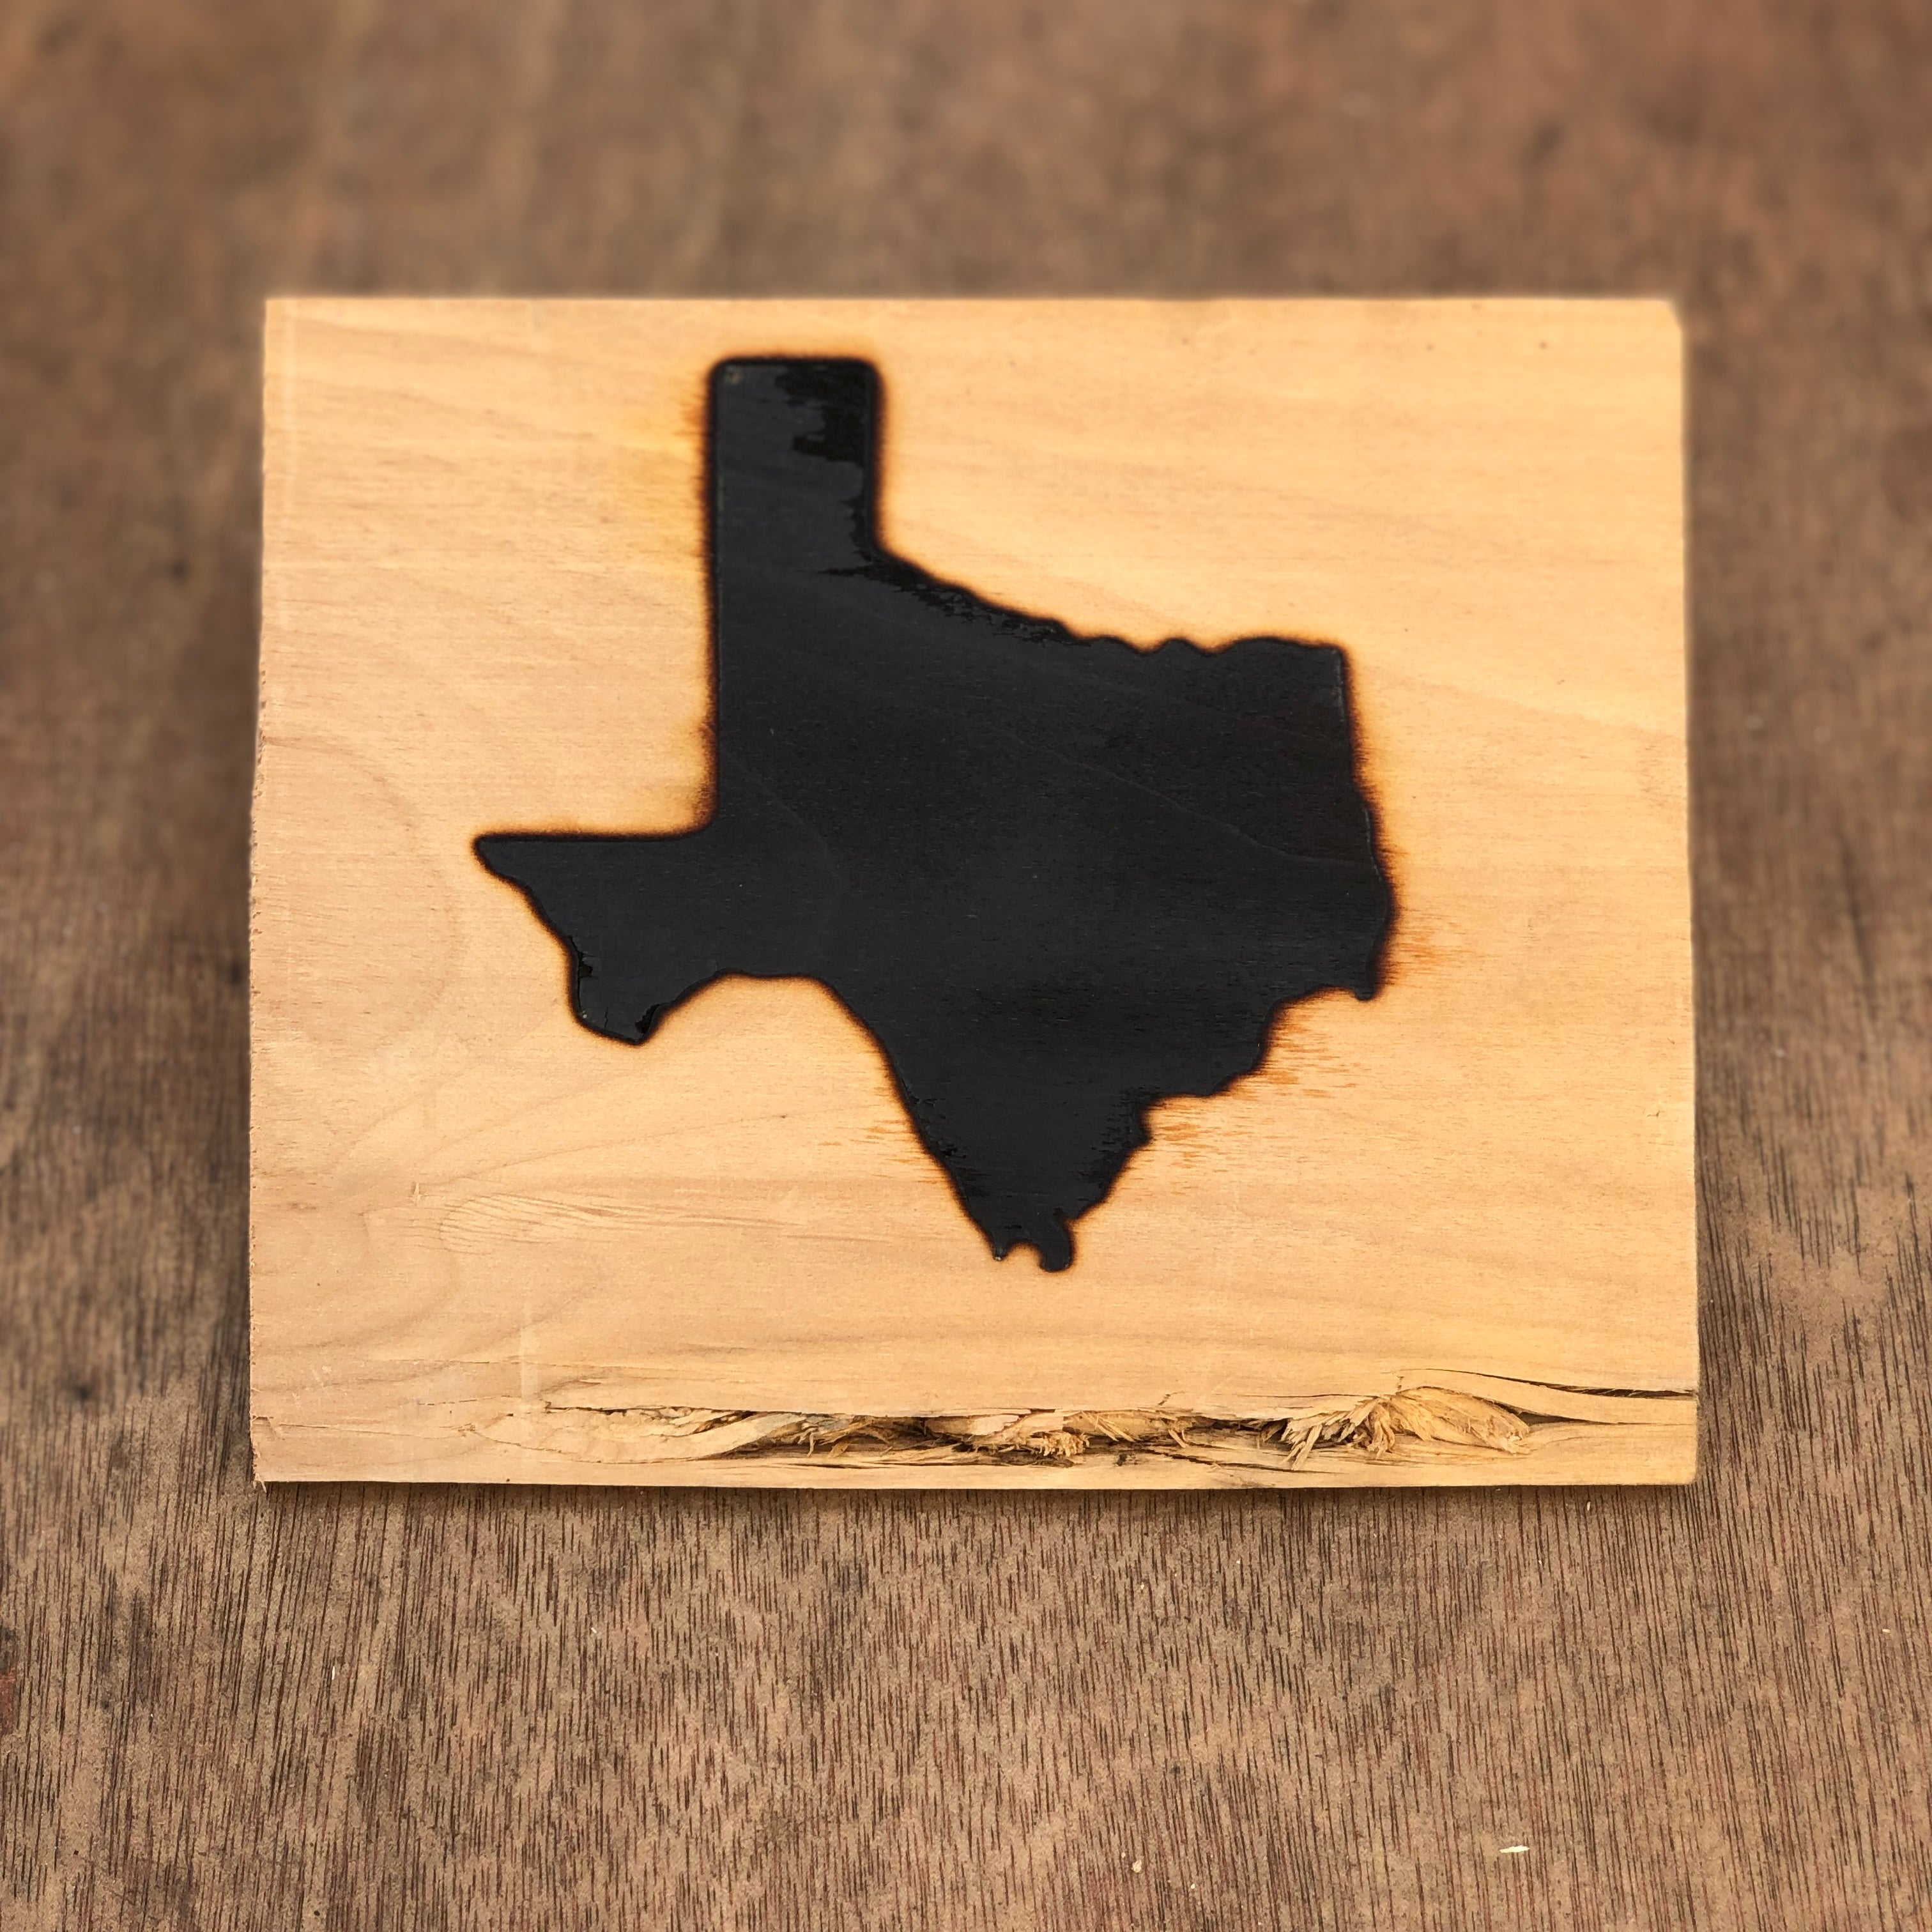 "Texas Silhouette Brand - 3.5"" - BBQ, Crafts, Woodworking Projects - The Heritage Forge"